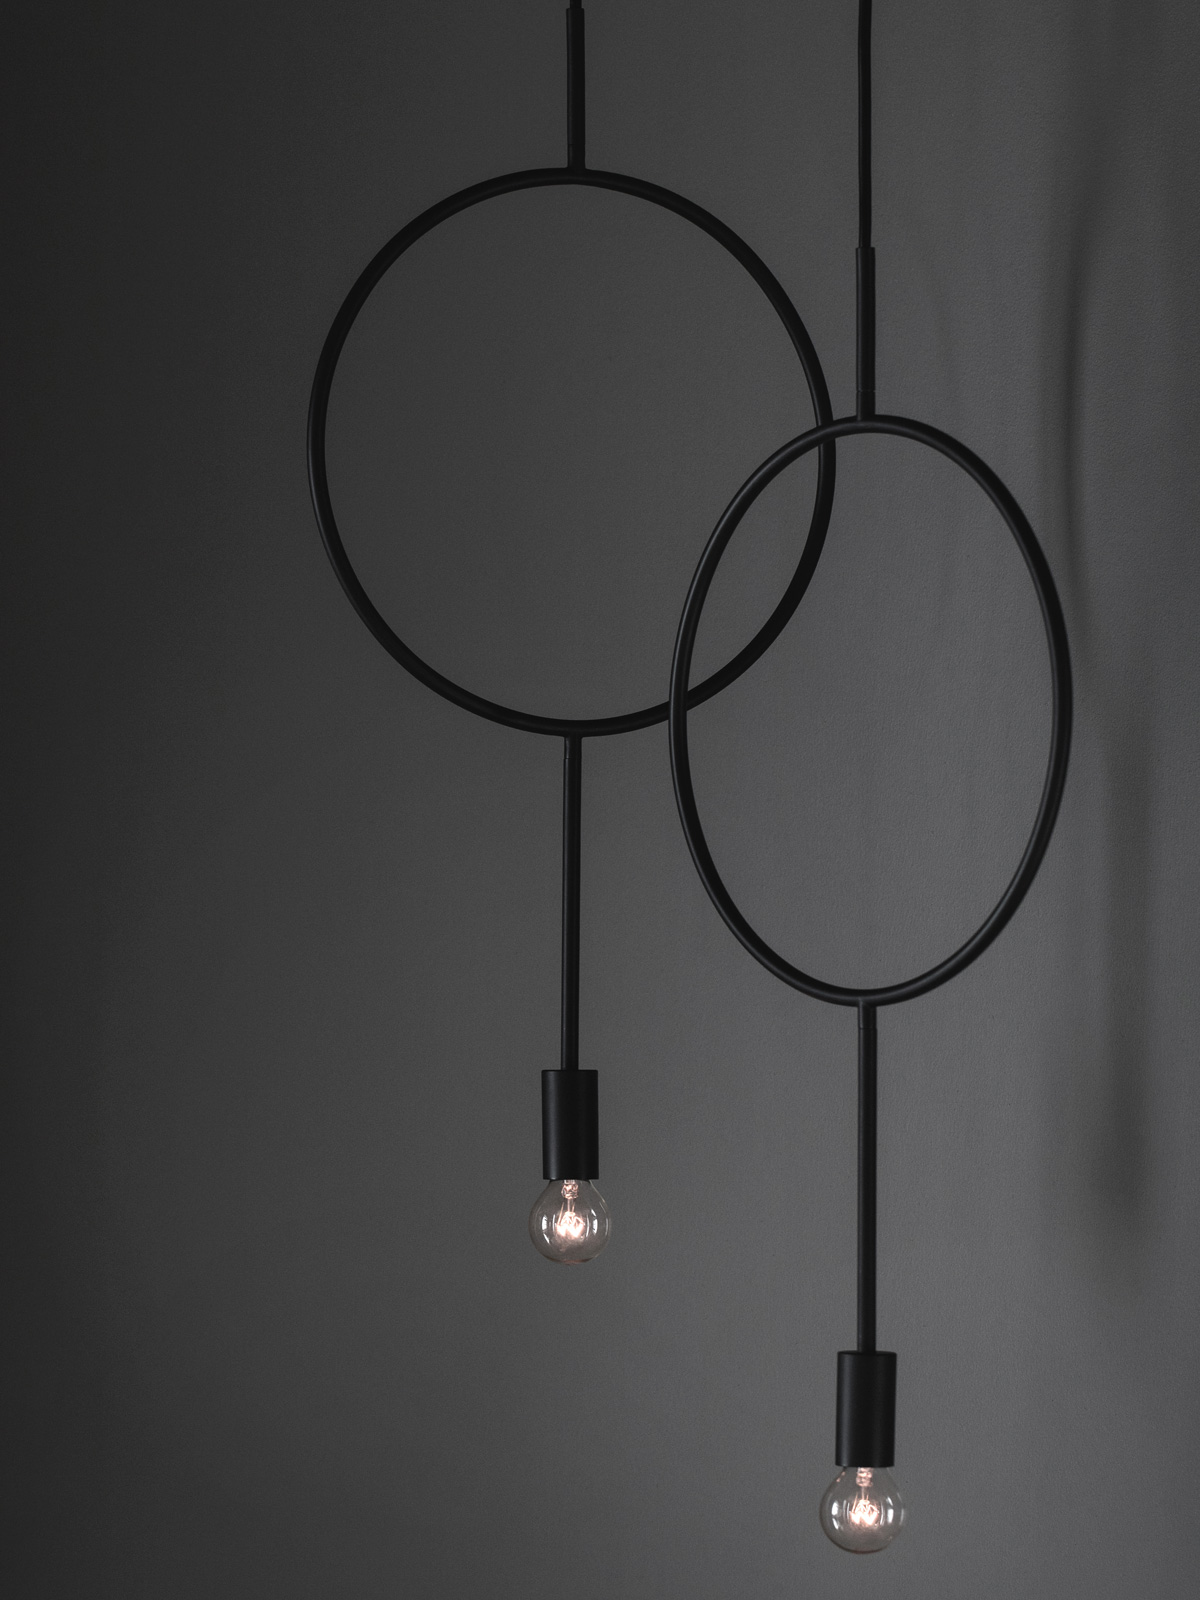 Northern Lighting Circle Lampe bei DesignOrt im Onlineshop